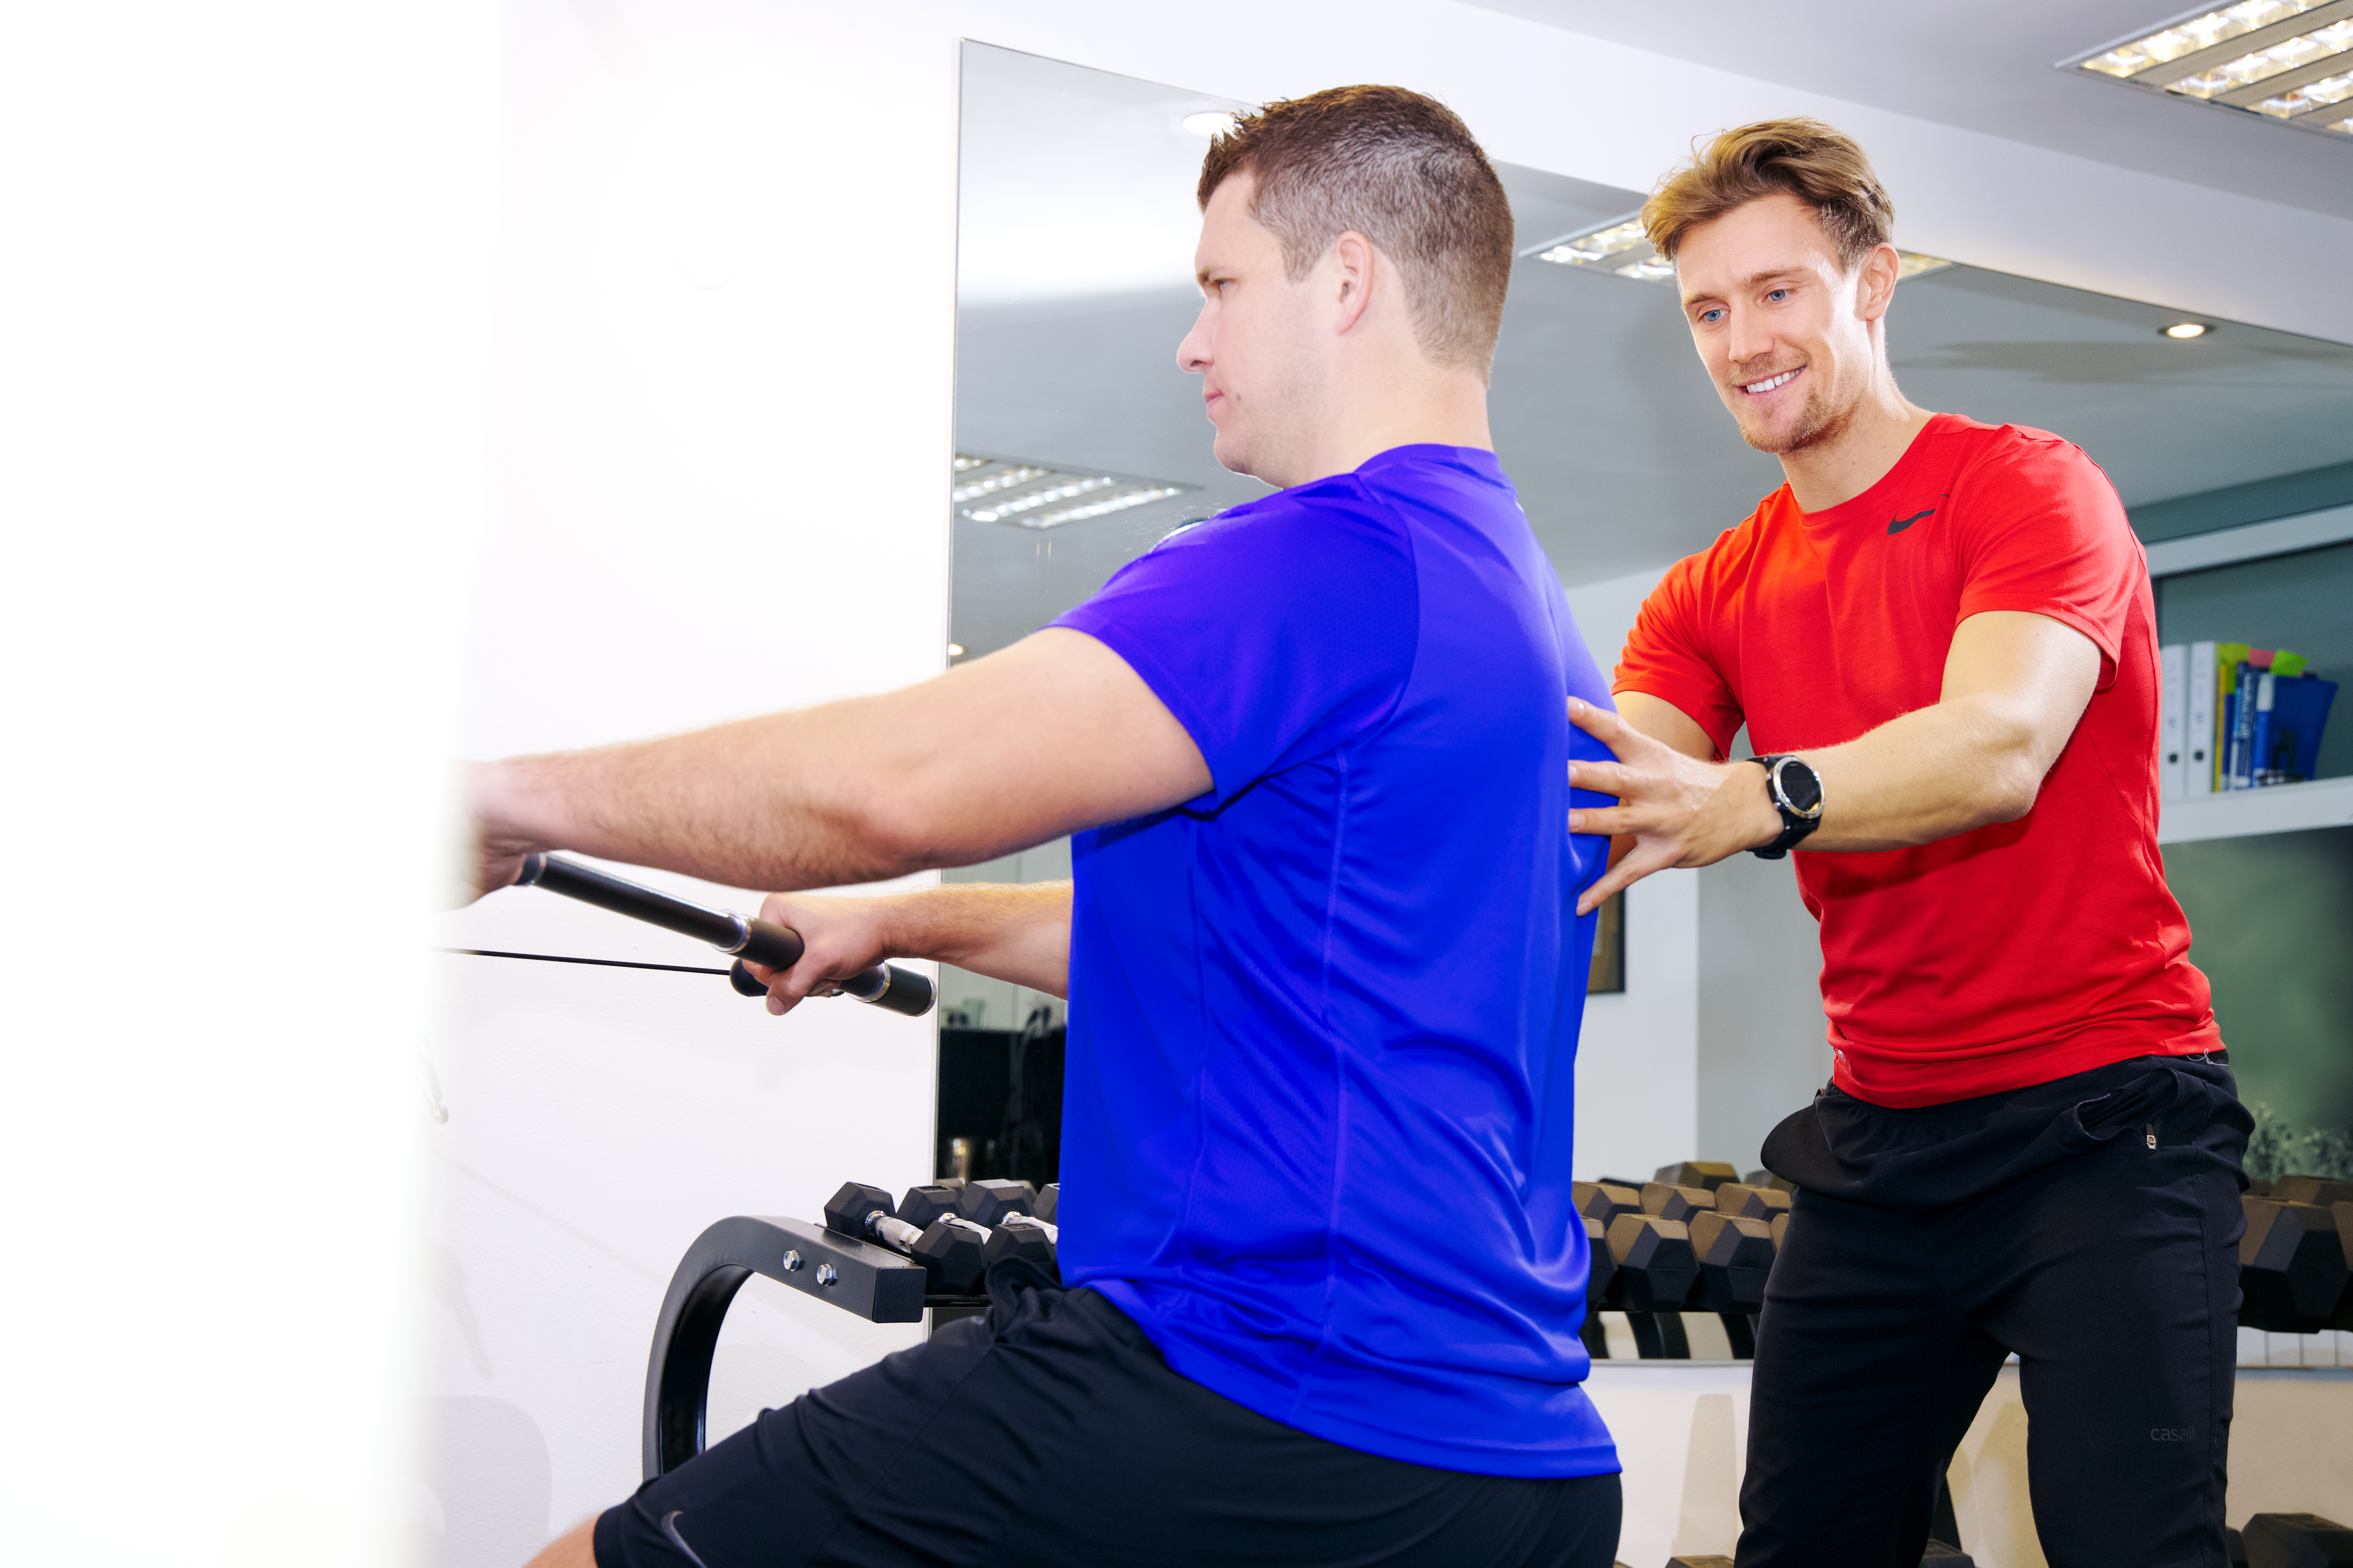 Personal Training Krafttraining Peter Simon, Clemens Delpin